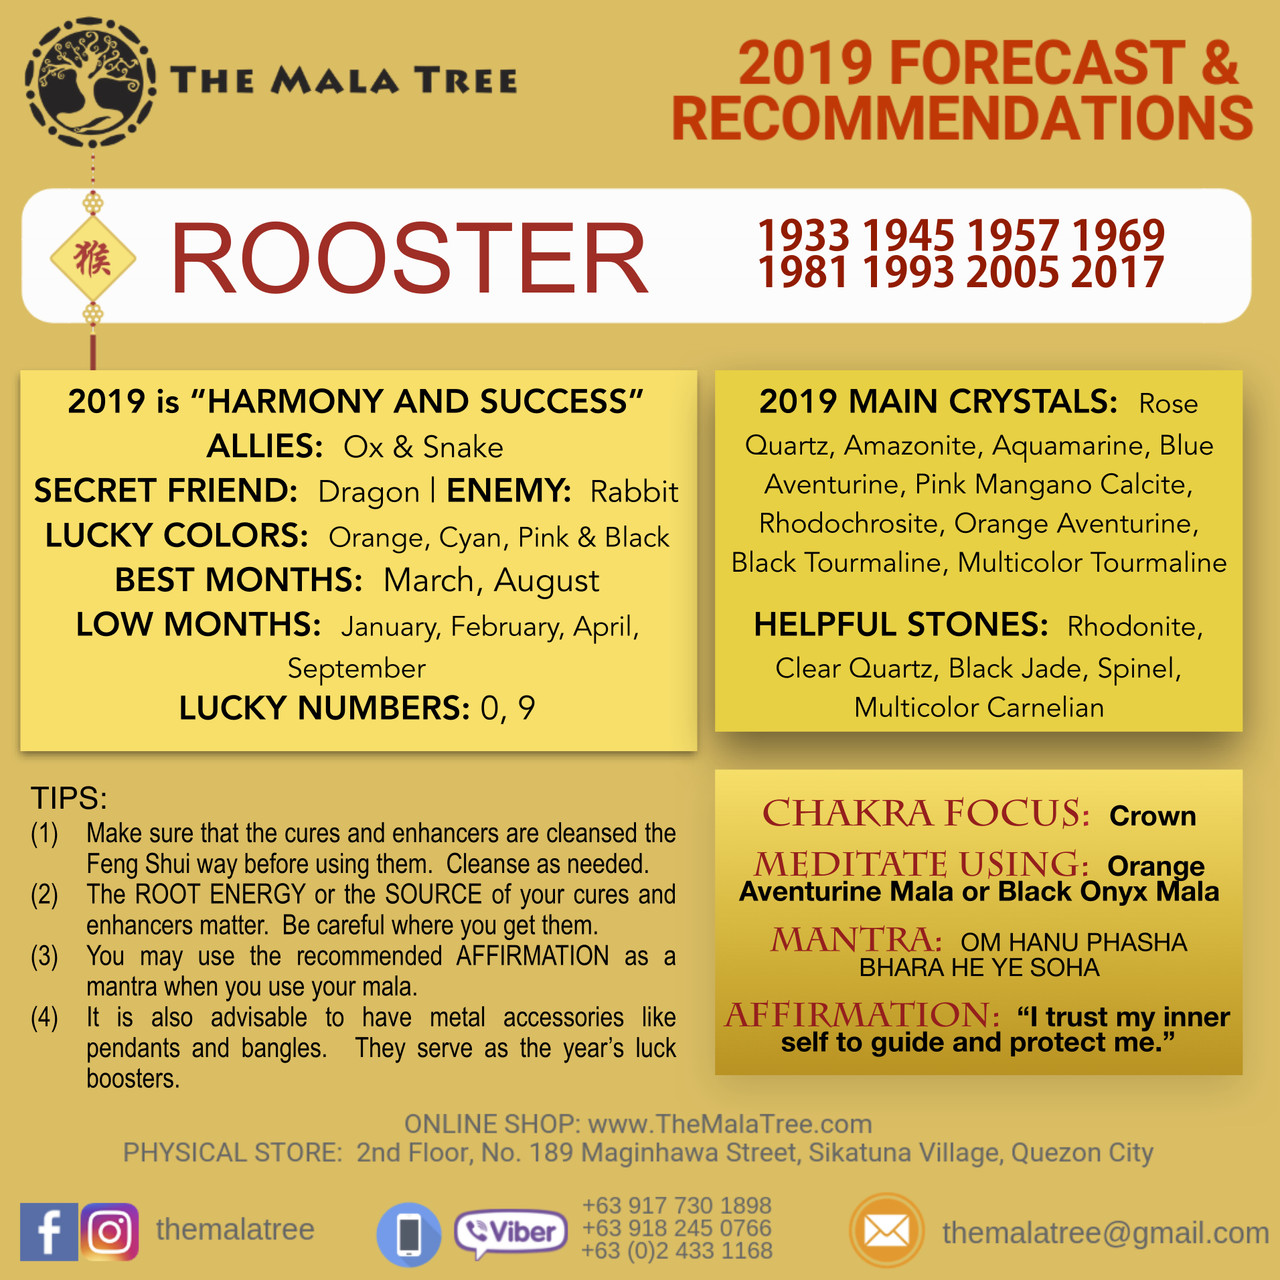 2019 Year of the Rooster